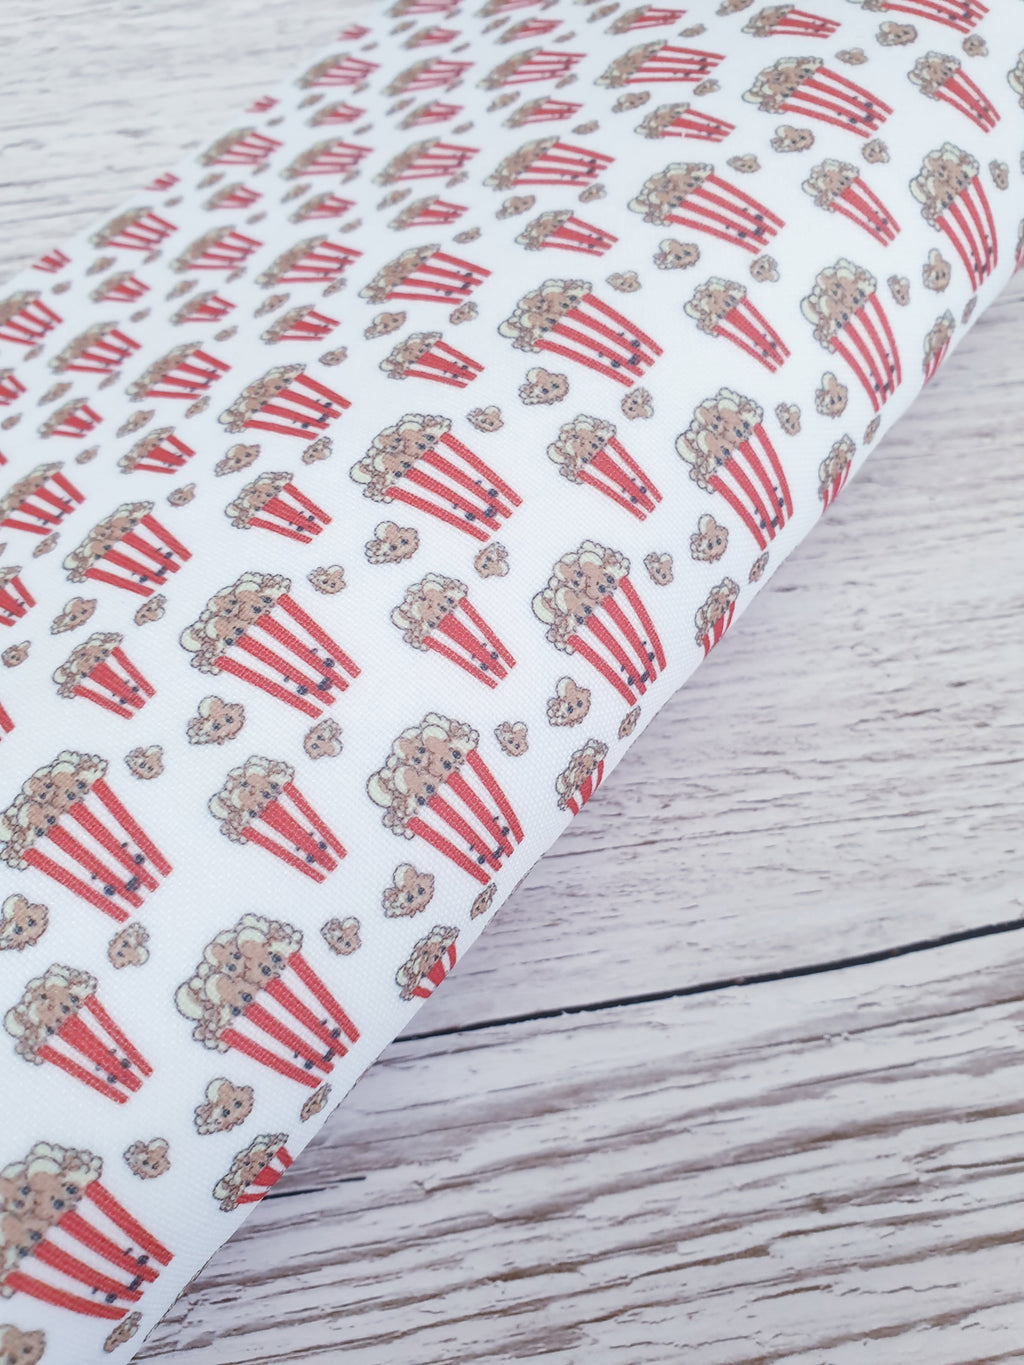 Pop Corn - Felt Backed Fabric - Honey Bee Craft Store